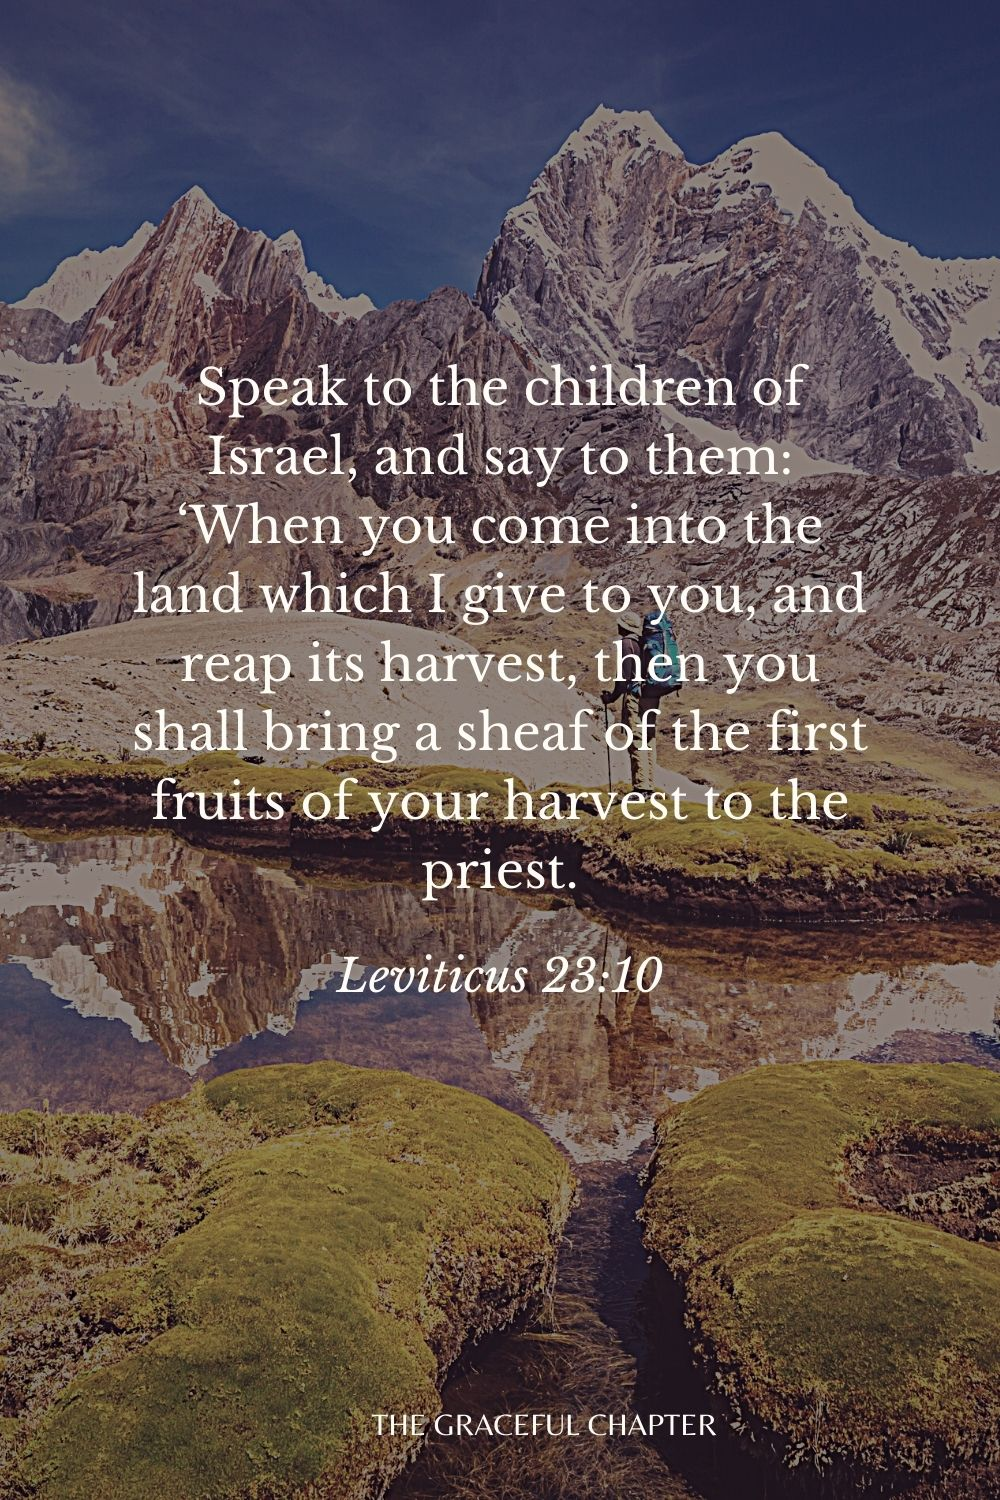 Speak to the children of Israel, and say to them: 'When you come into the land which I give to you, and reap its harvest, then you shall bring a sheaf of the first fruits of your harvest to the priest. Leviticus 23:10